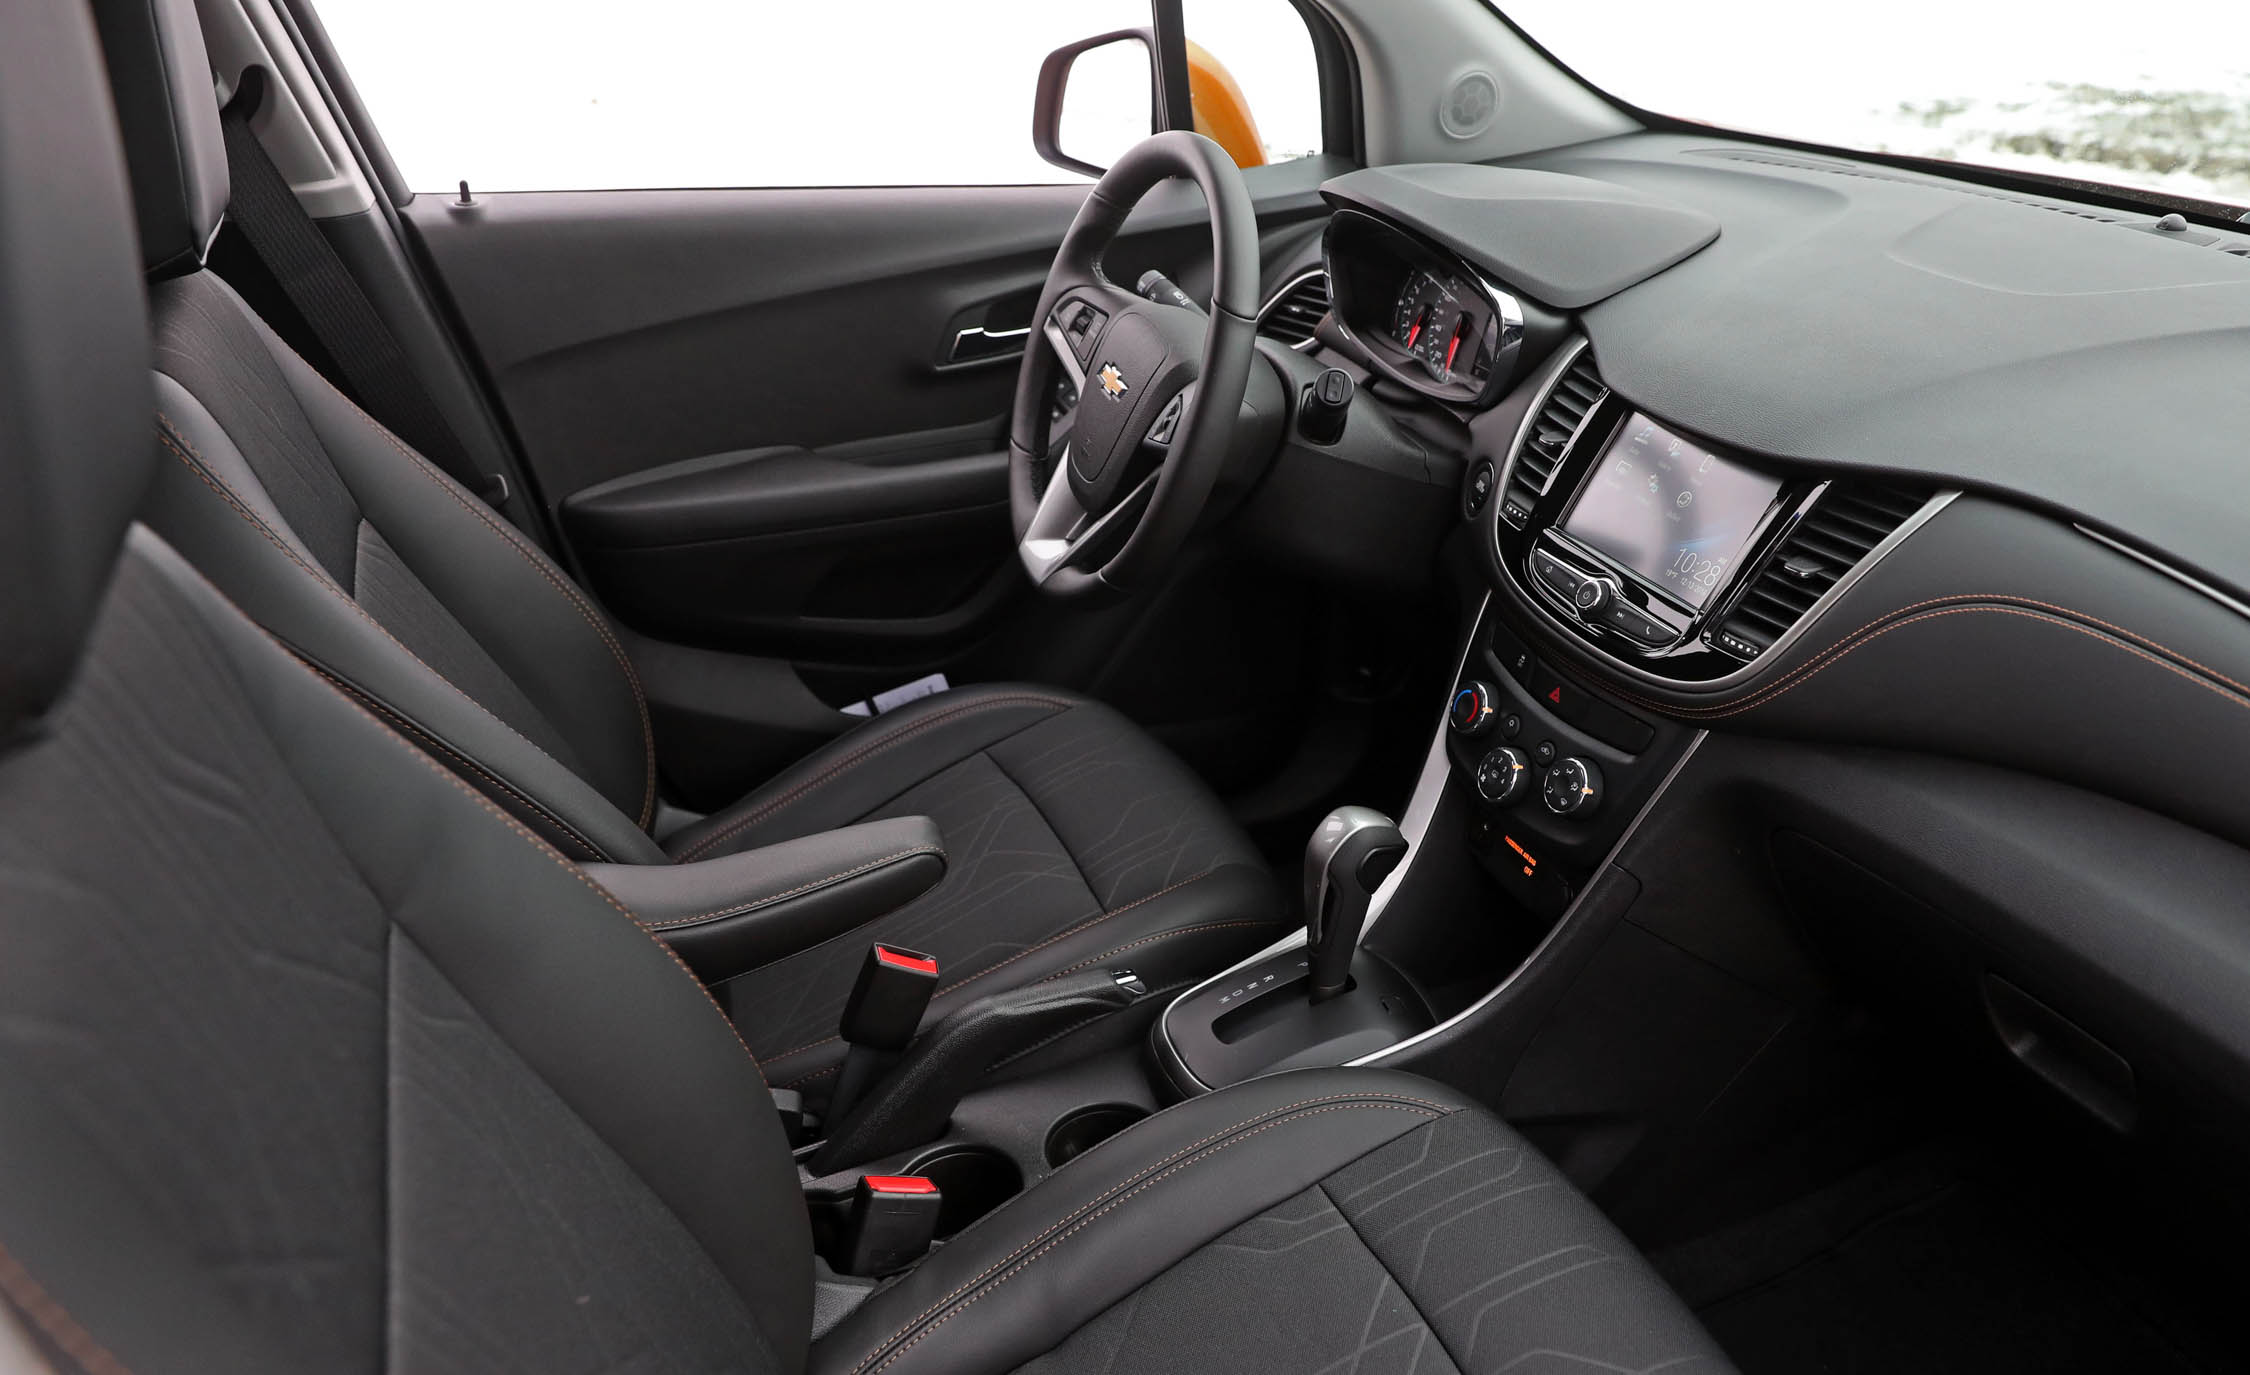 2017 Chevrolet Trax Interior Cockpit And Dashboard (View 36 of 47)